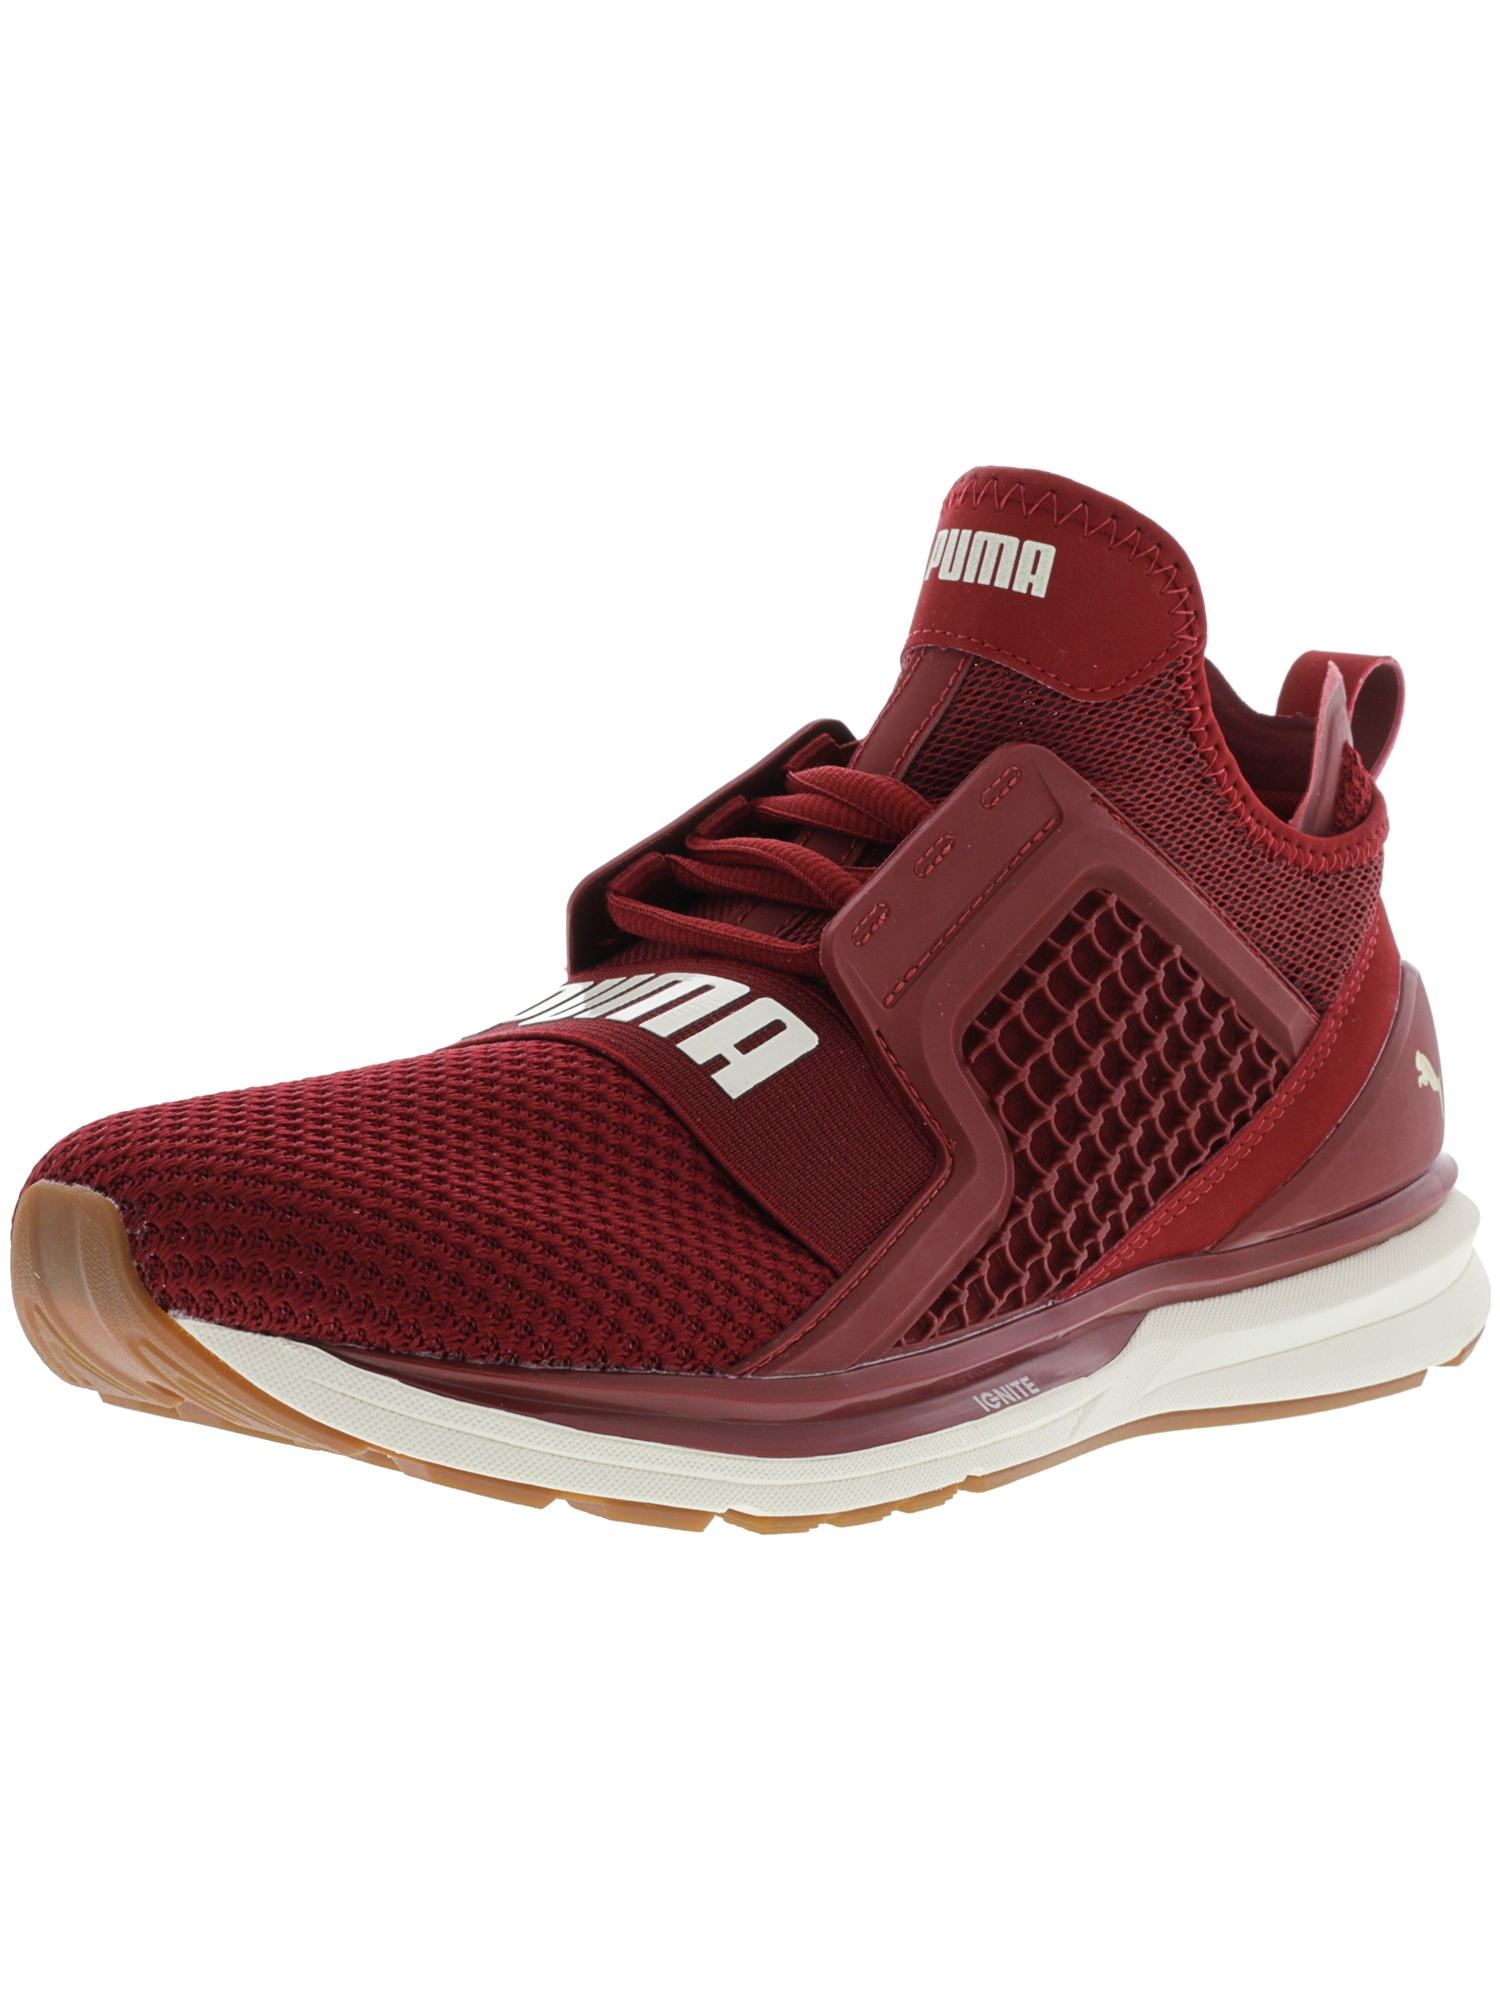 Puma Women's Ignite Limitless Weave Red Dahlia / Whisper White Ankle-High Training Shoes - 9.5M